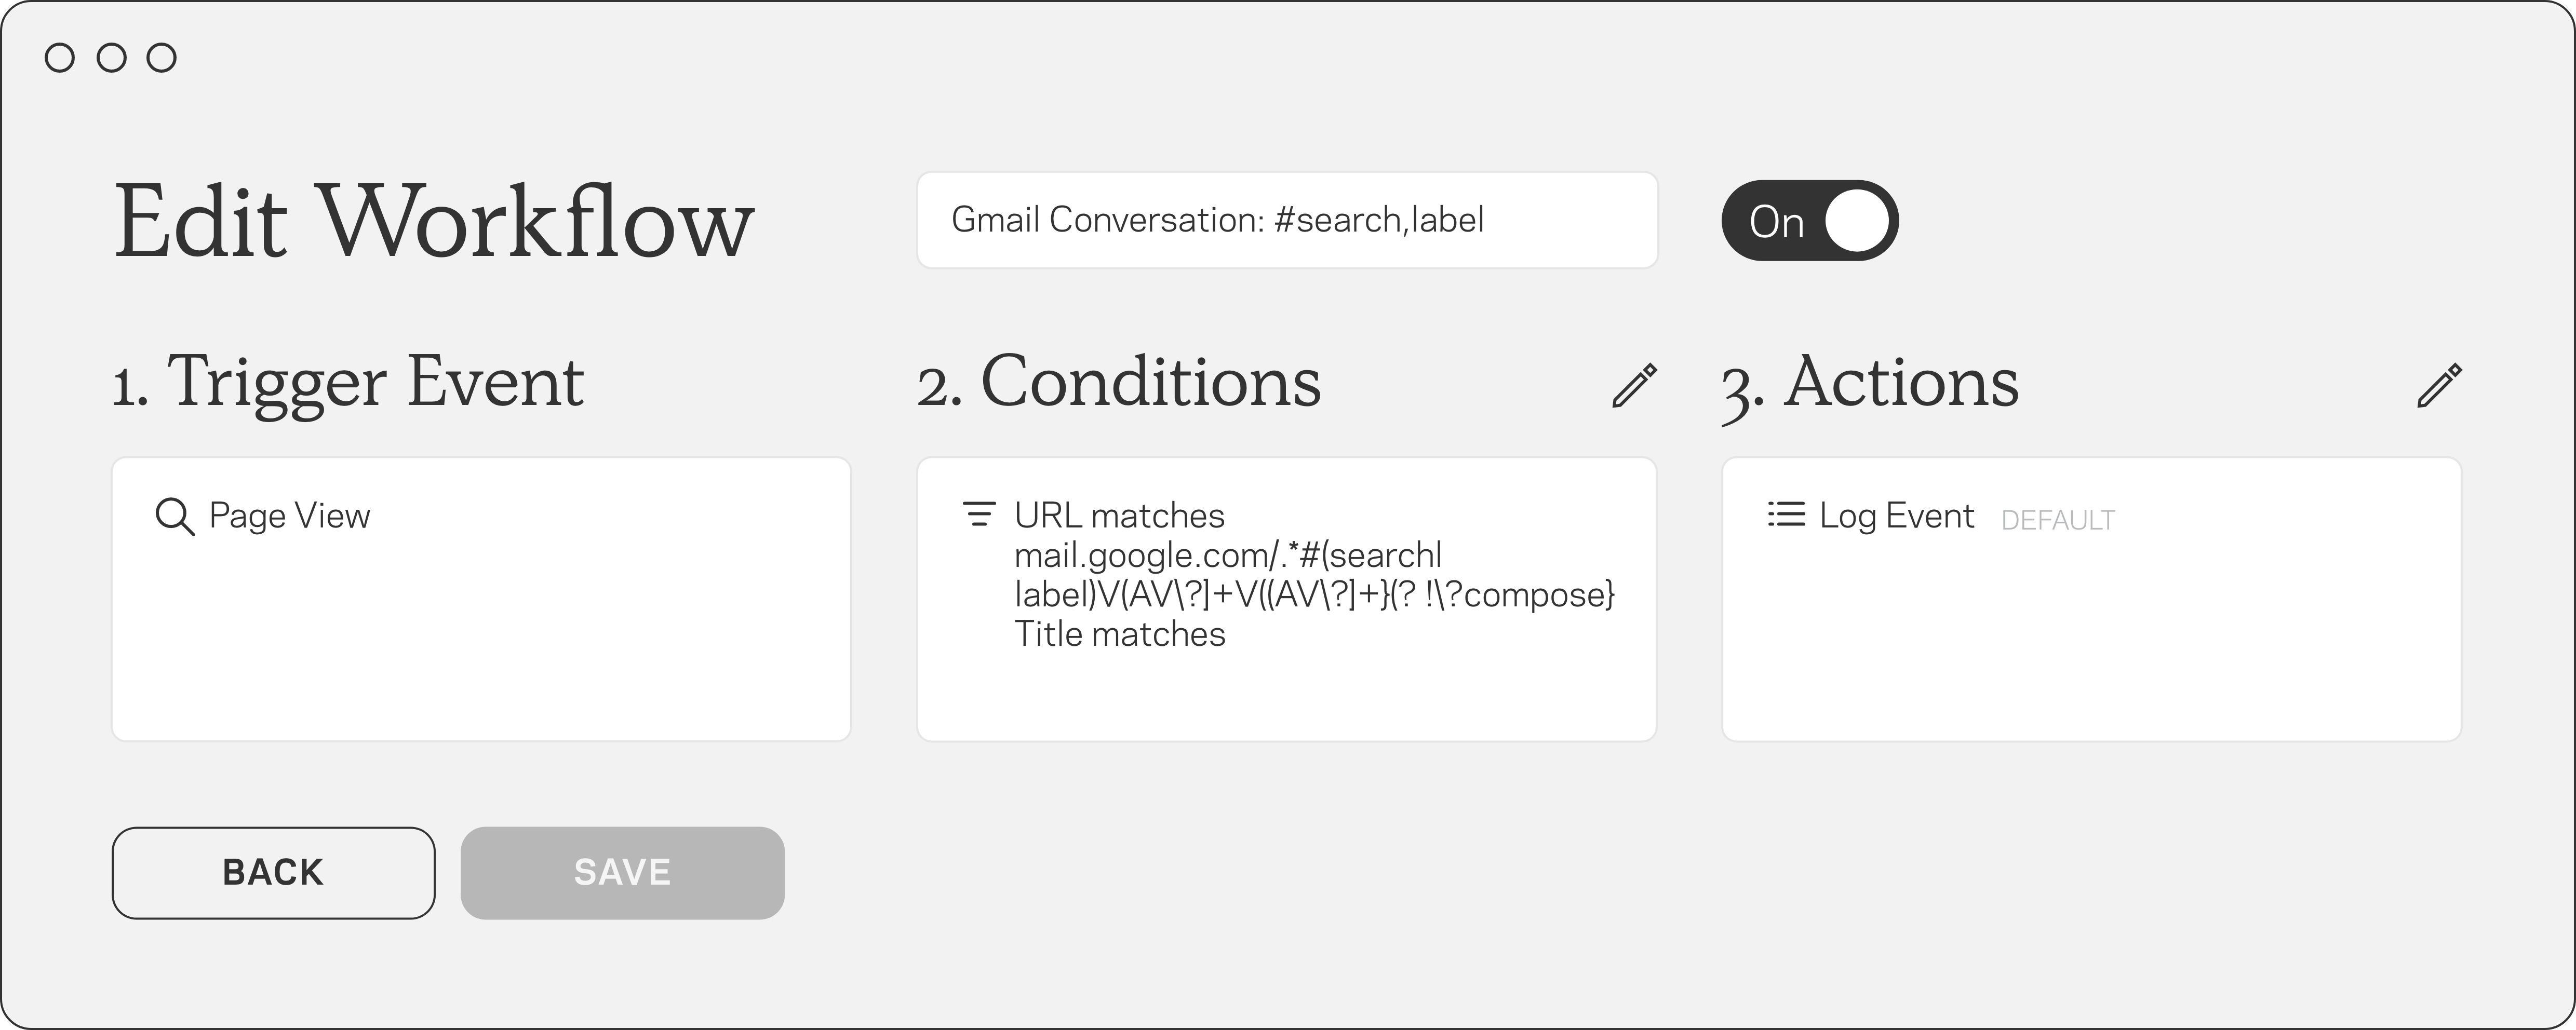 Editable workflow with event triggers, conditions, actions and labels